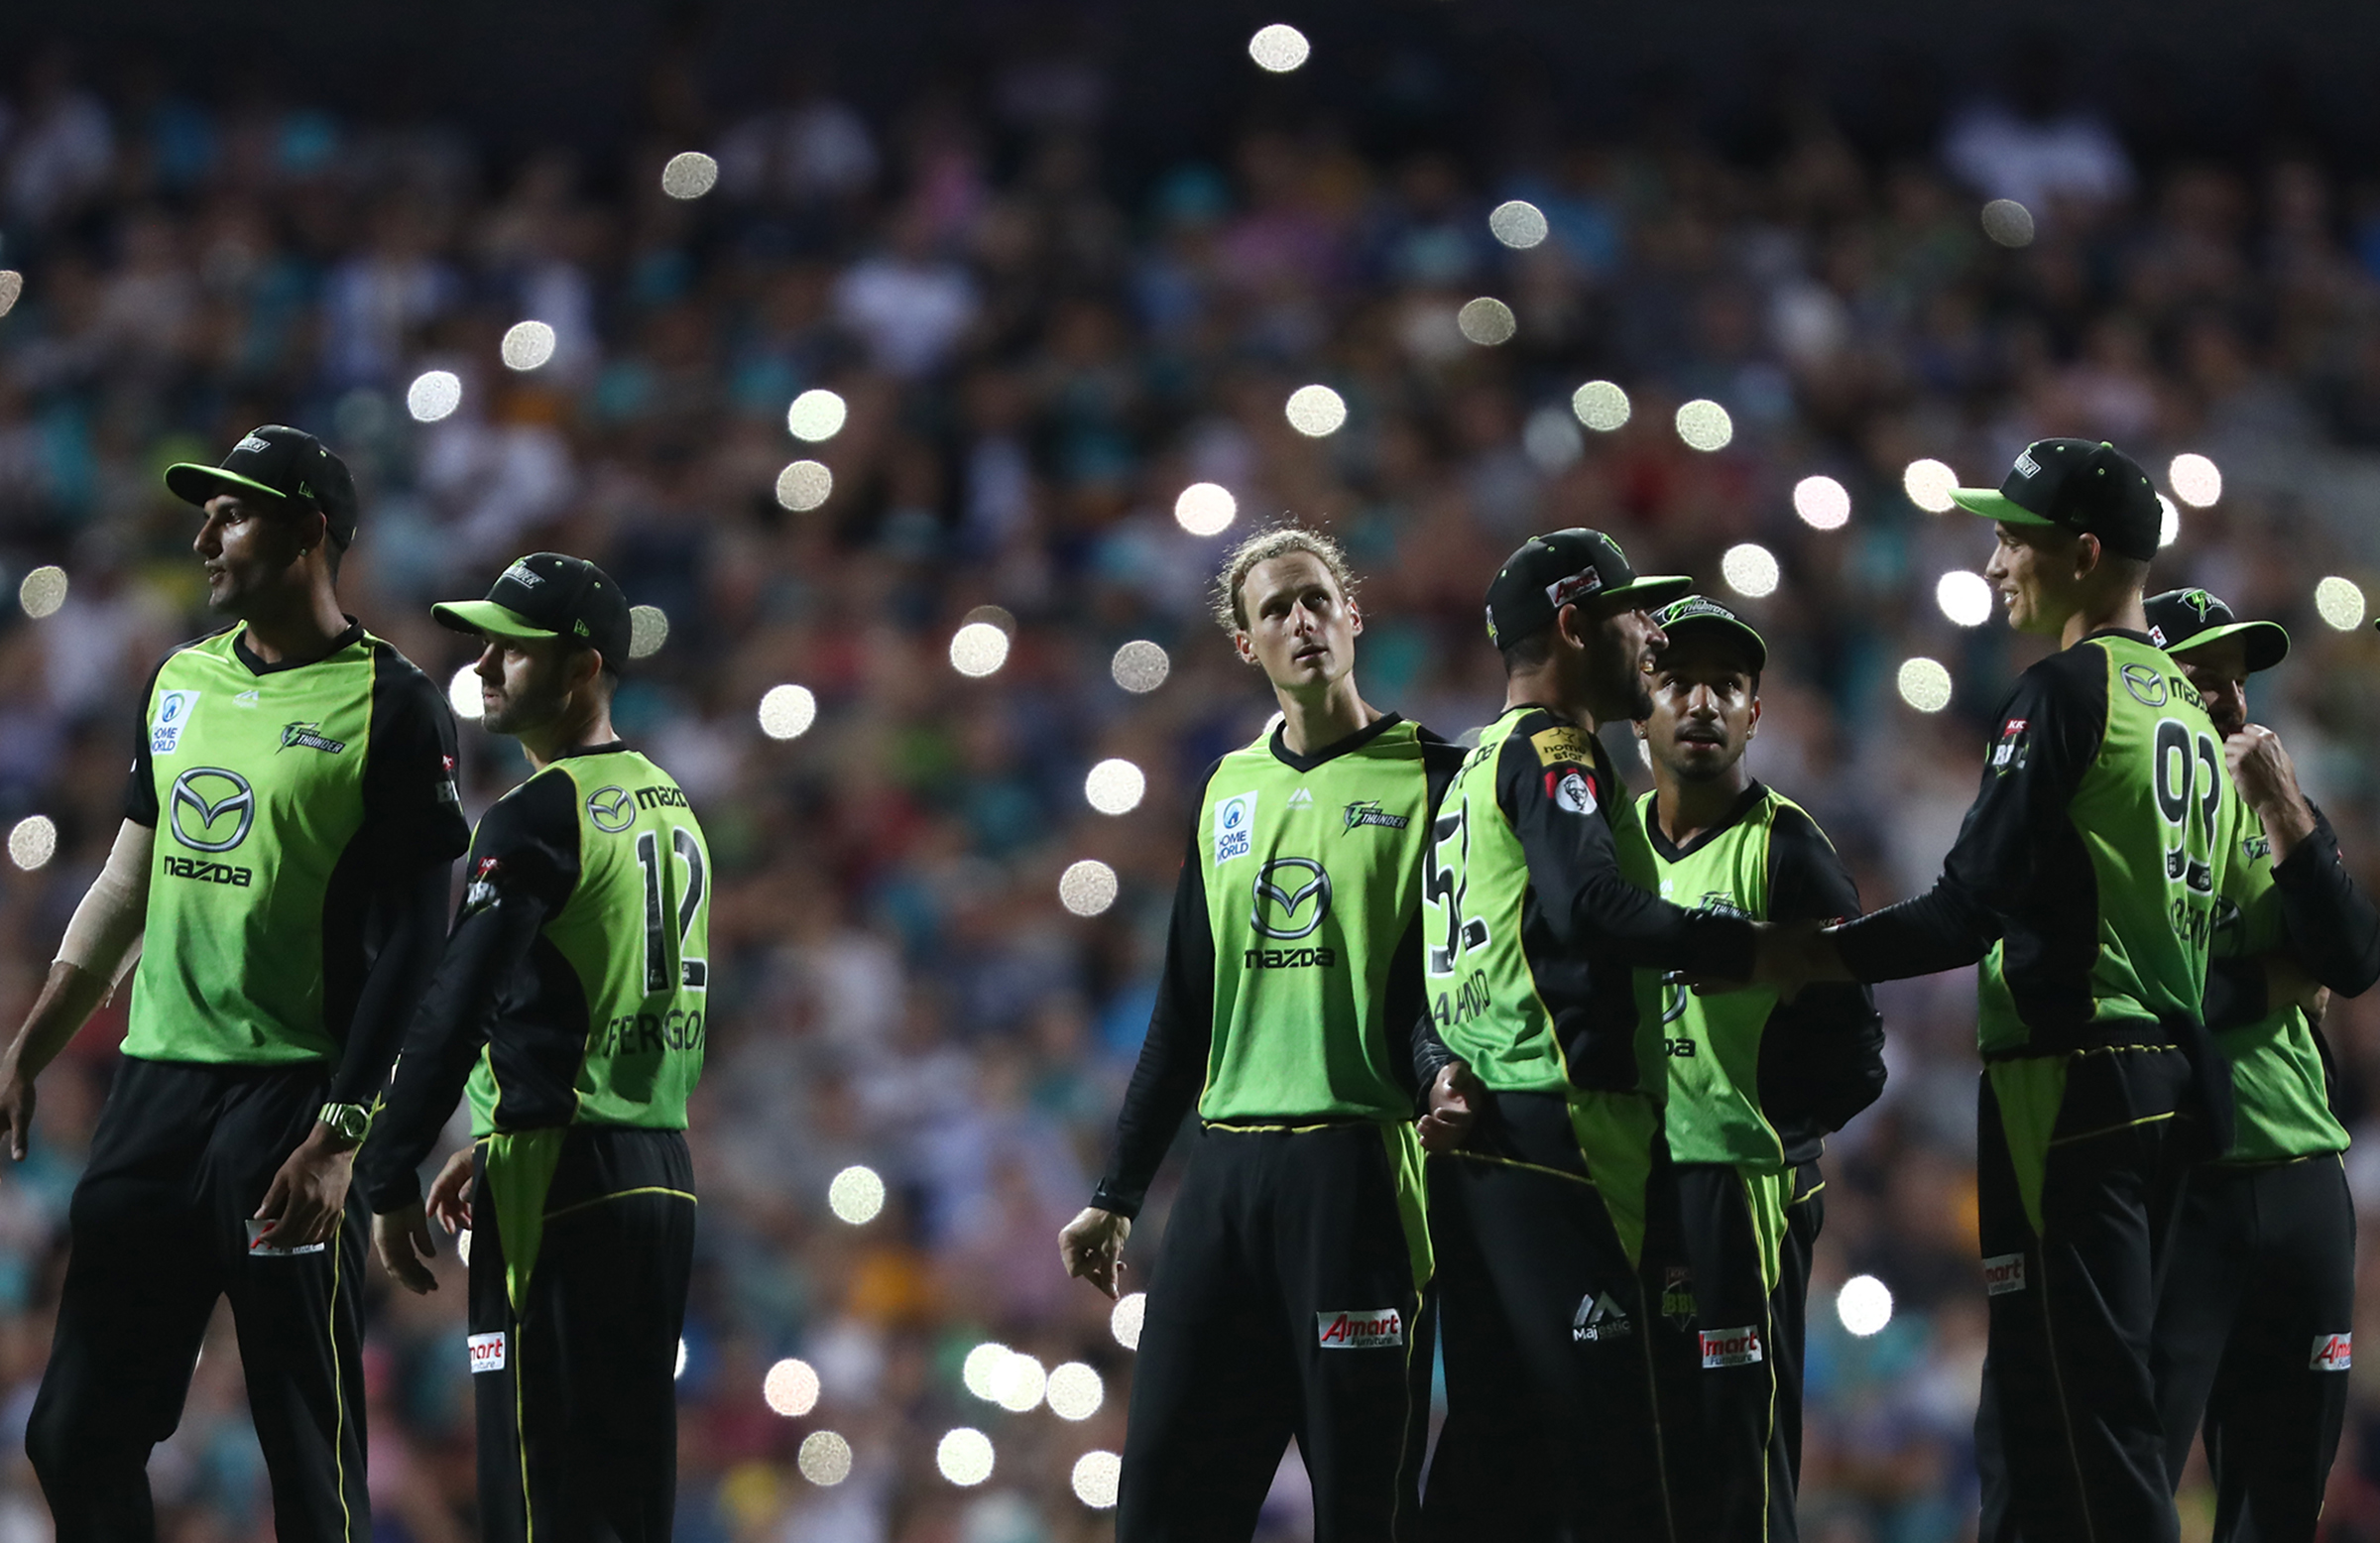 Fans light up the Gabba with their phones // Getty